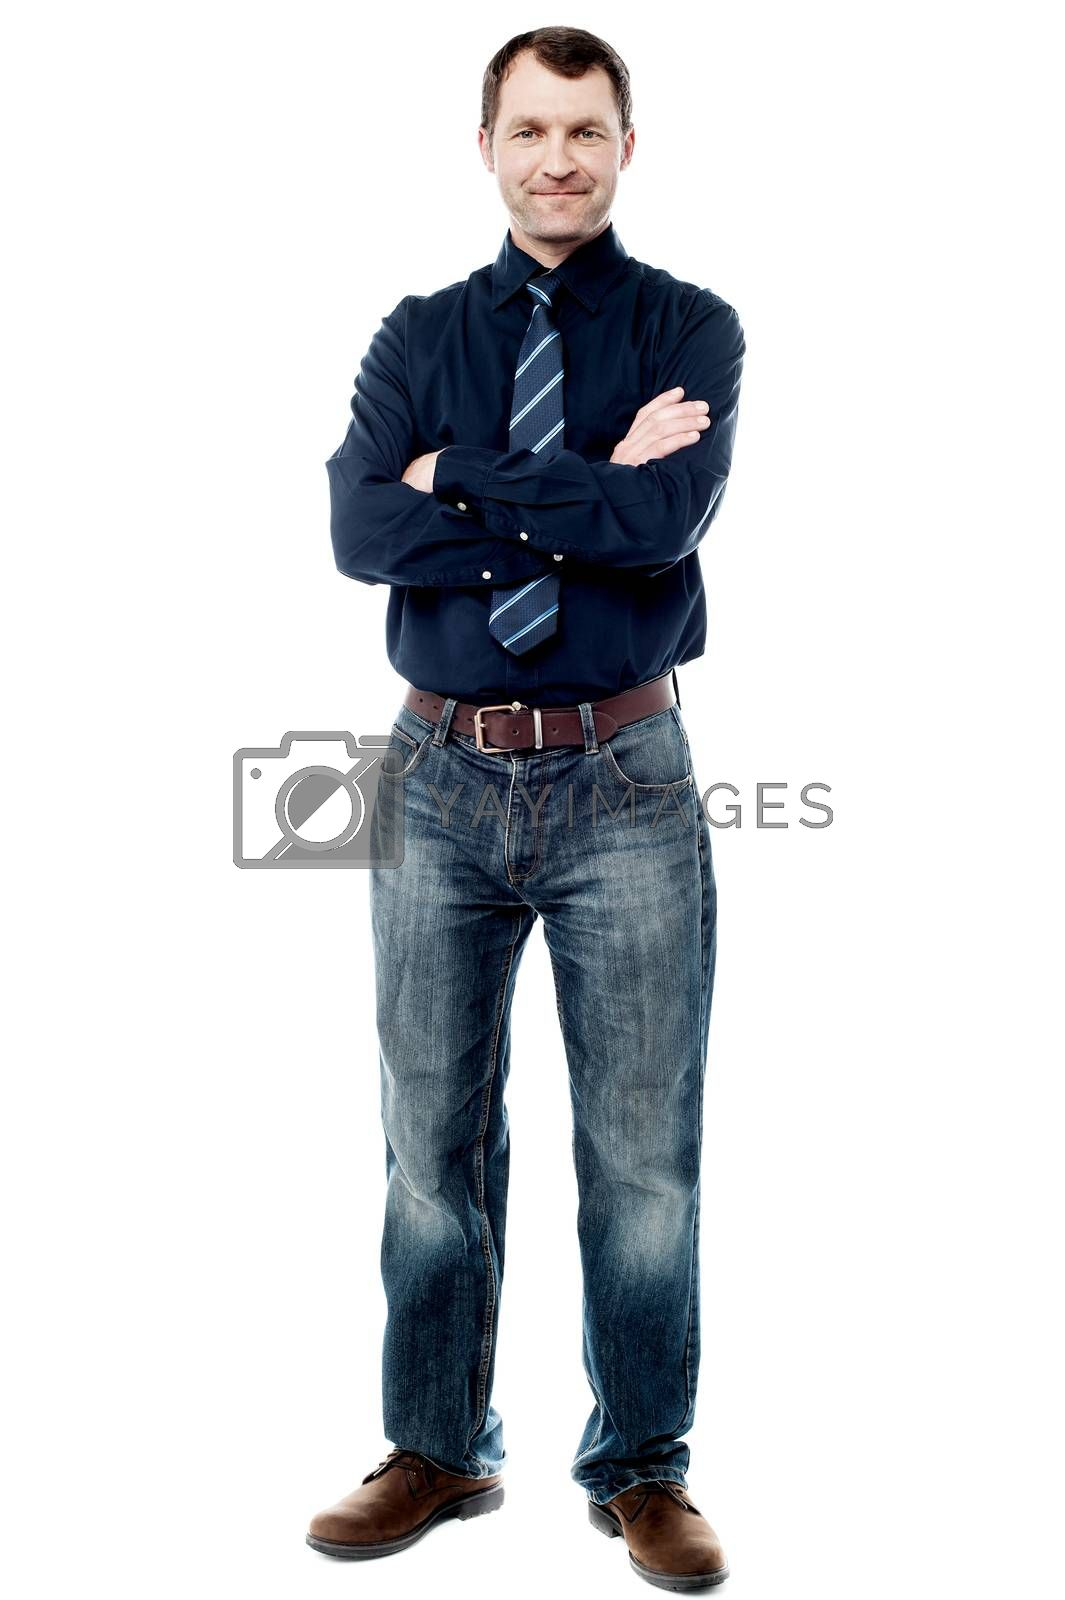 Full length image of confident business executive